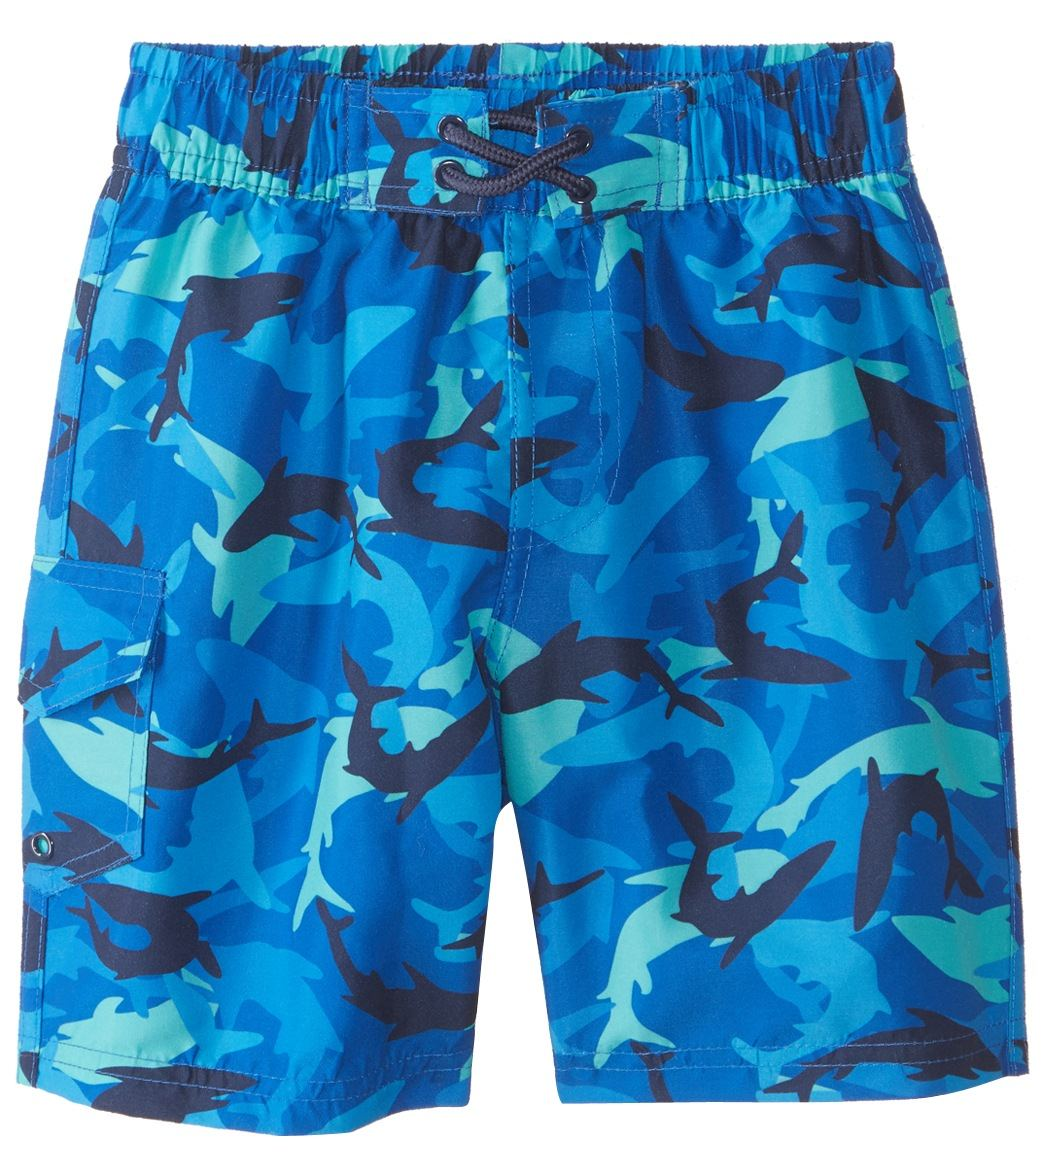 6ef05bb5d0a Sporti Boys' Swim Board Short Trunk (2T - 5T) at SwimOutlet.com